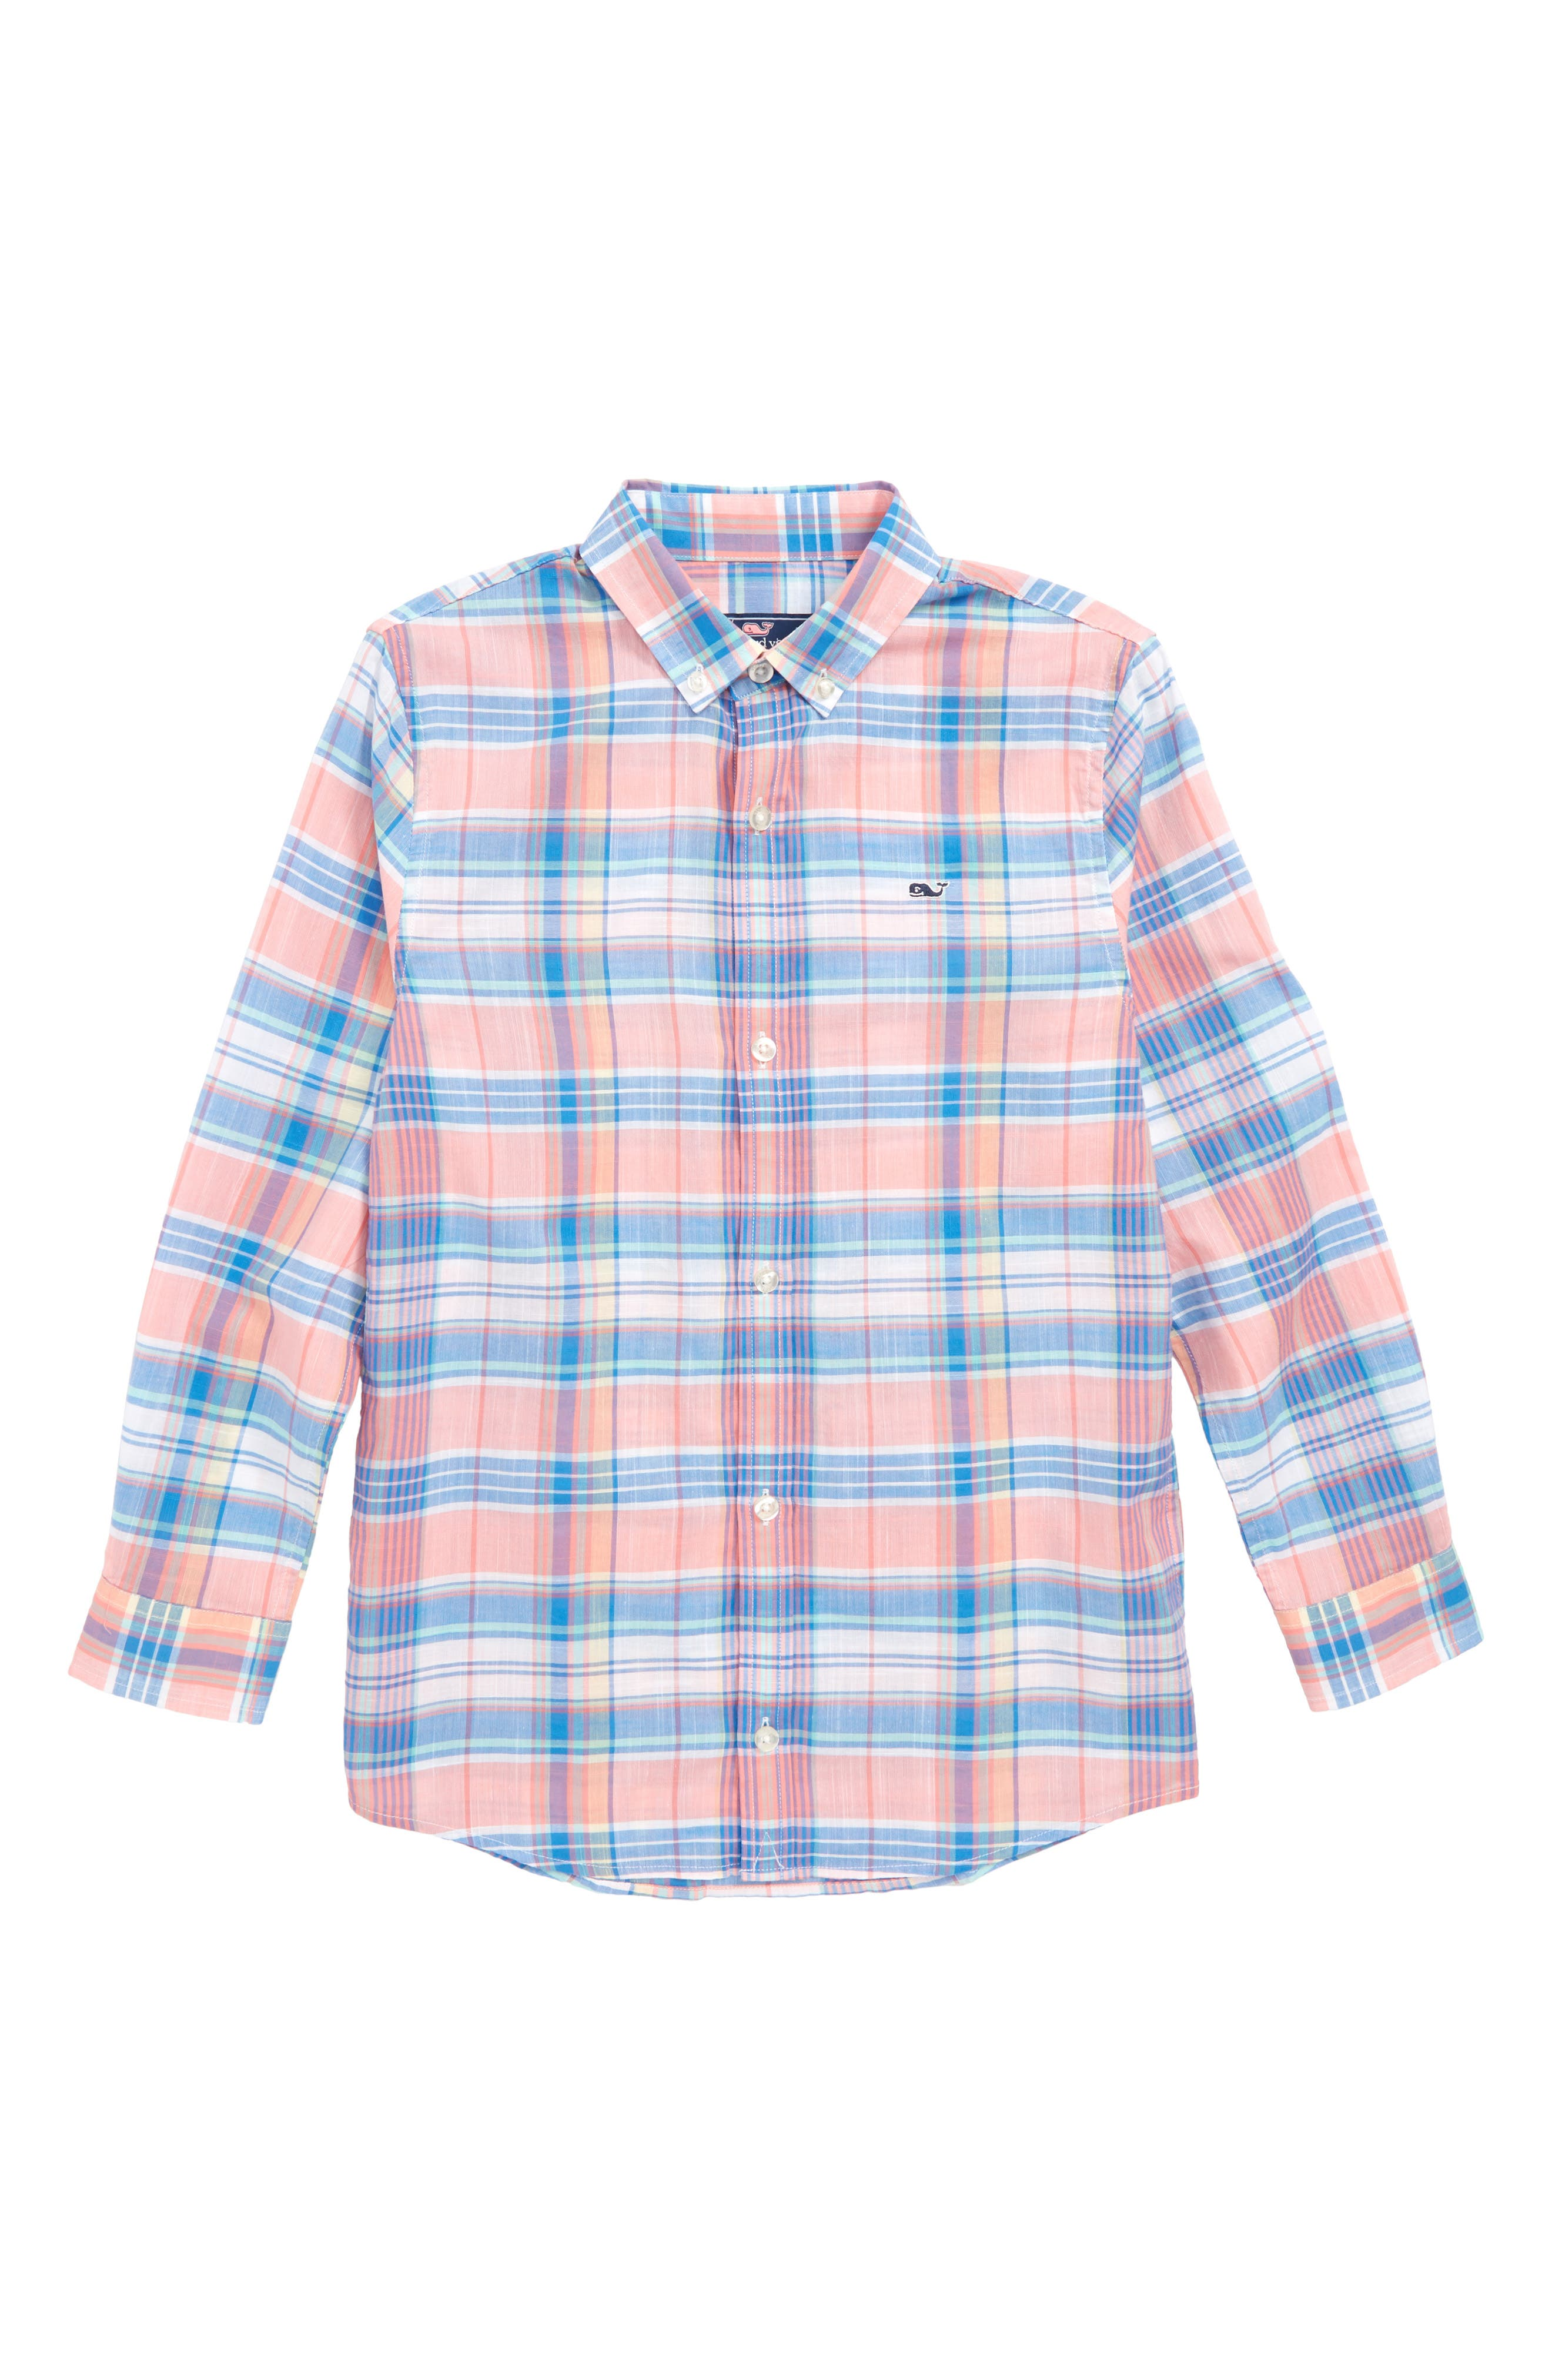 Smith Point Plaid Whale Shirt,                         Main,                         color, 681